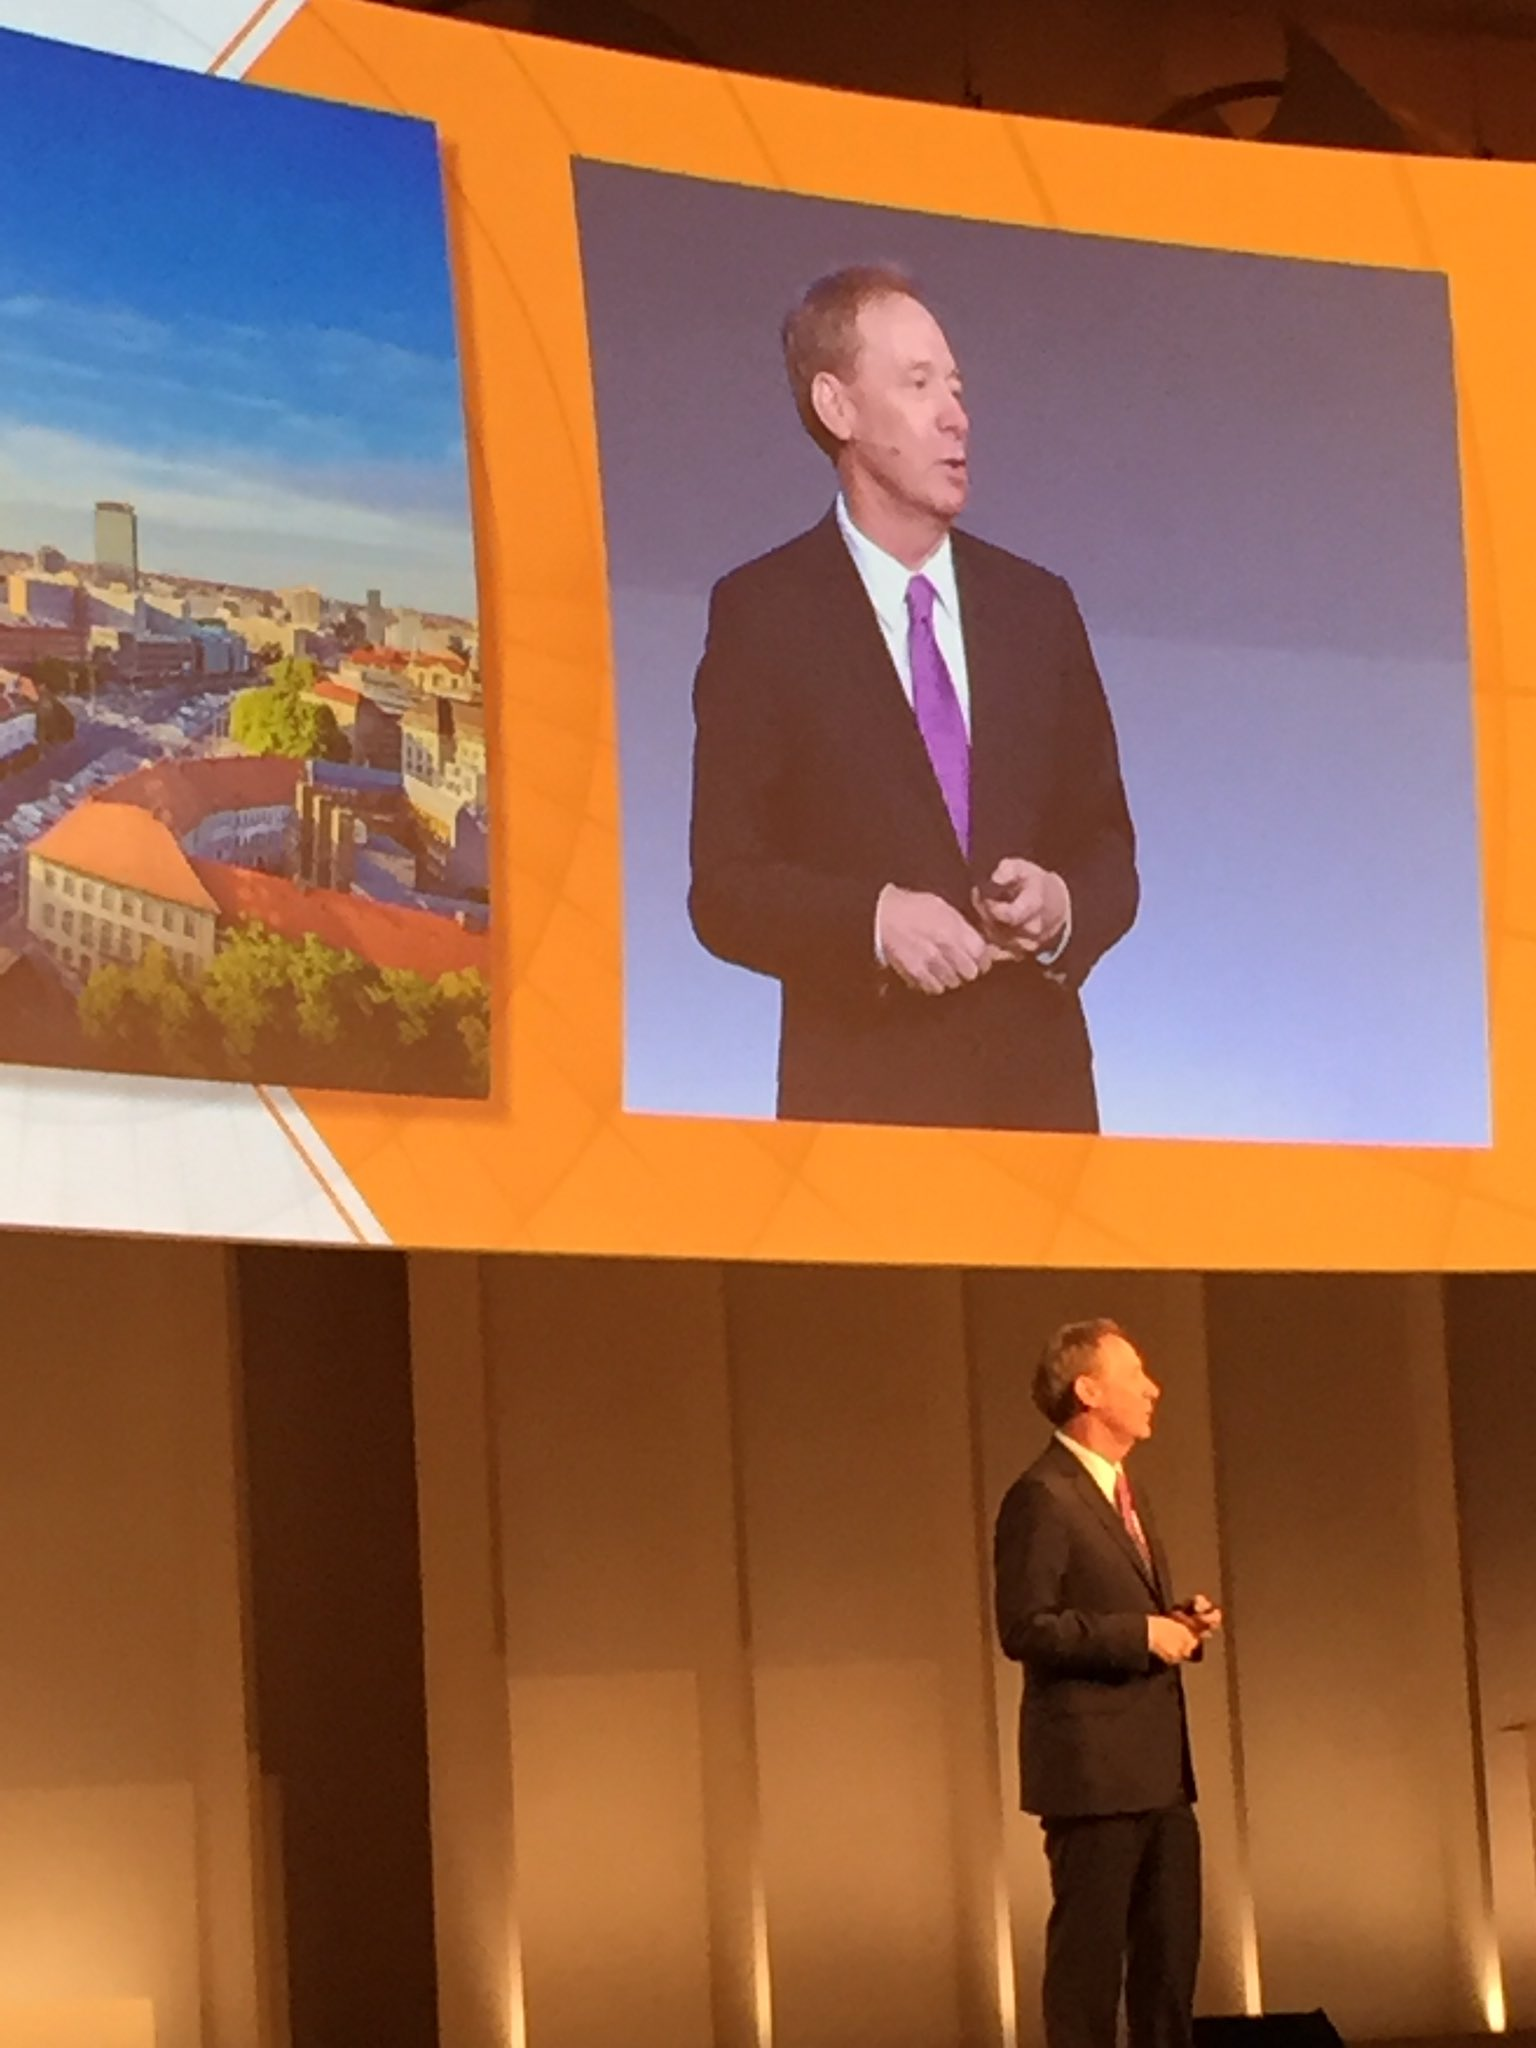 Second day of #PrincetonFung starts with @BradSmi https://t.co/xdGdOHgrbr